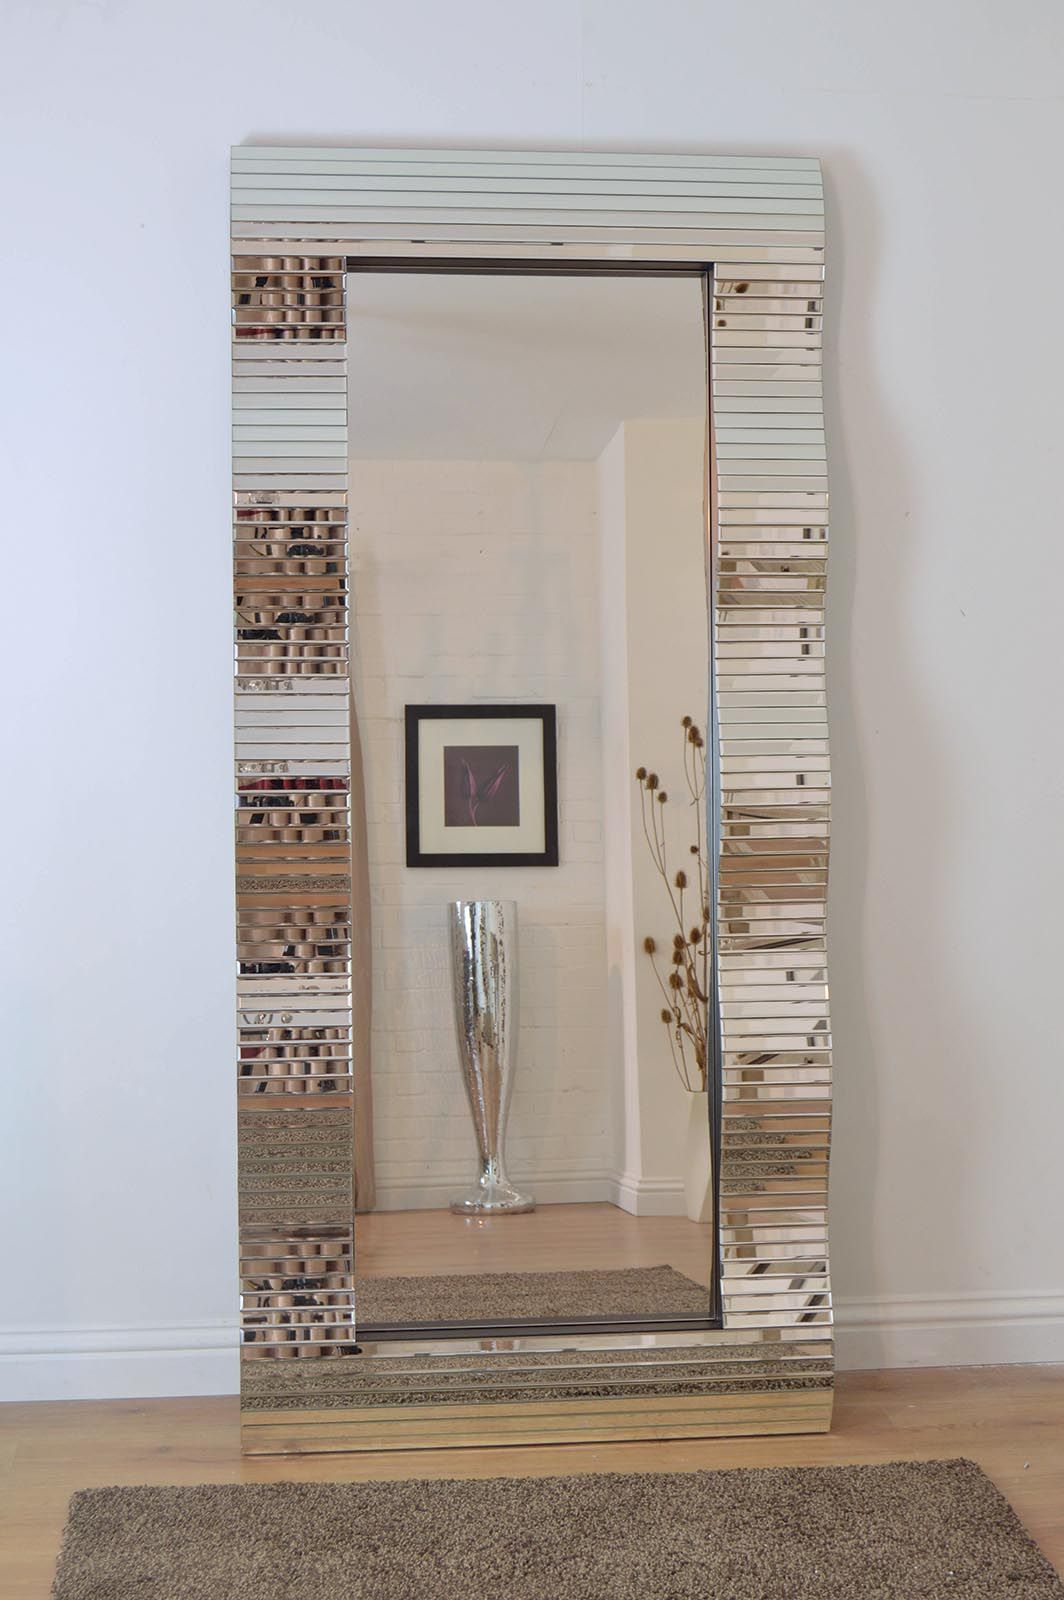 Mirroroutlet are delighted to offer for sale this stunning full length  solid mirror glass wall mirror. Large Shabby Chic Ornate Full Length Silver Wall Mirror 5Ft4 X